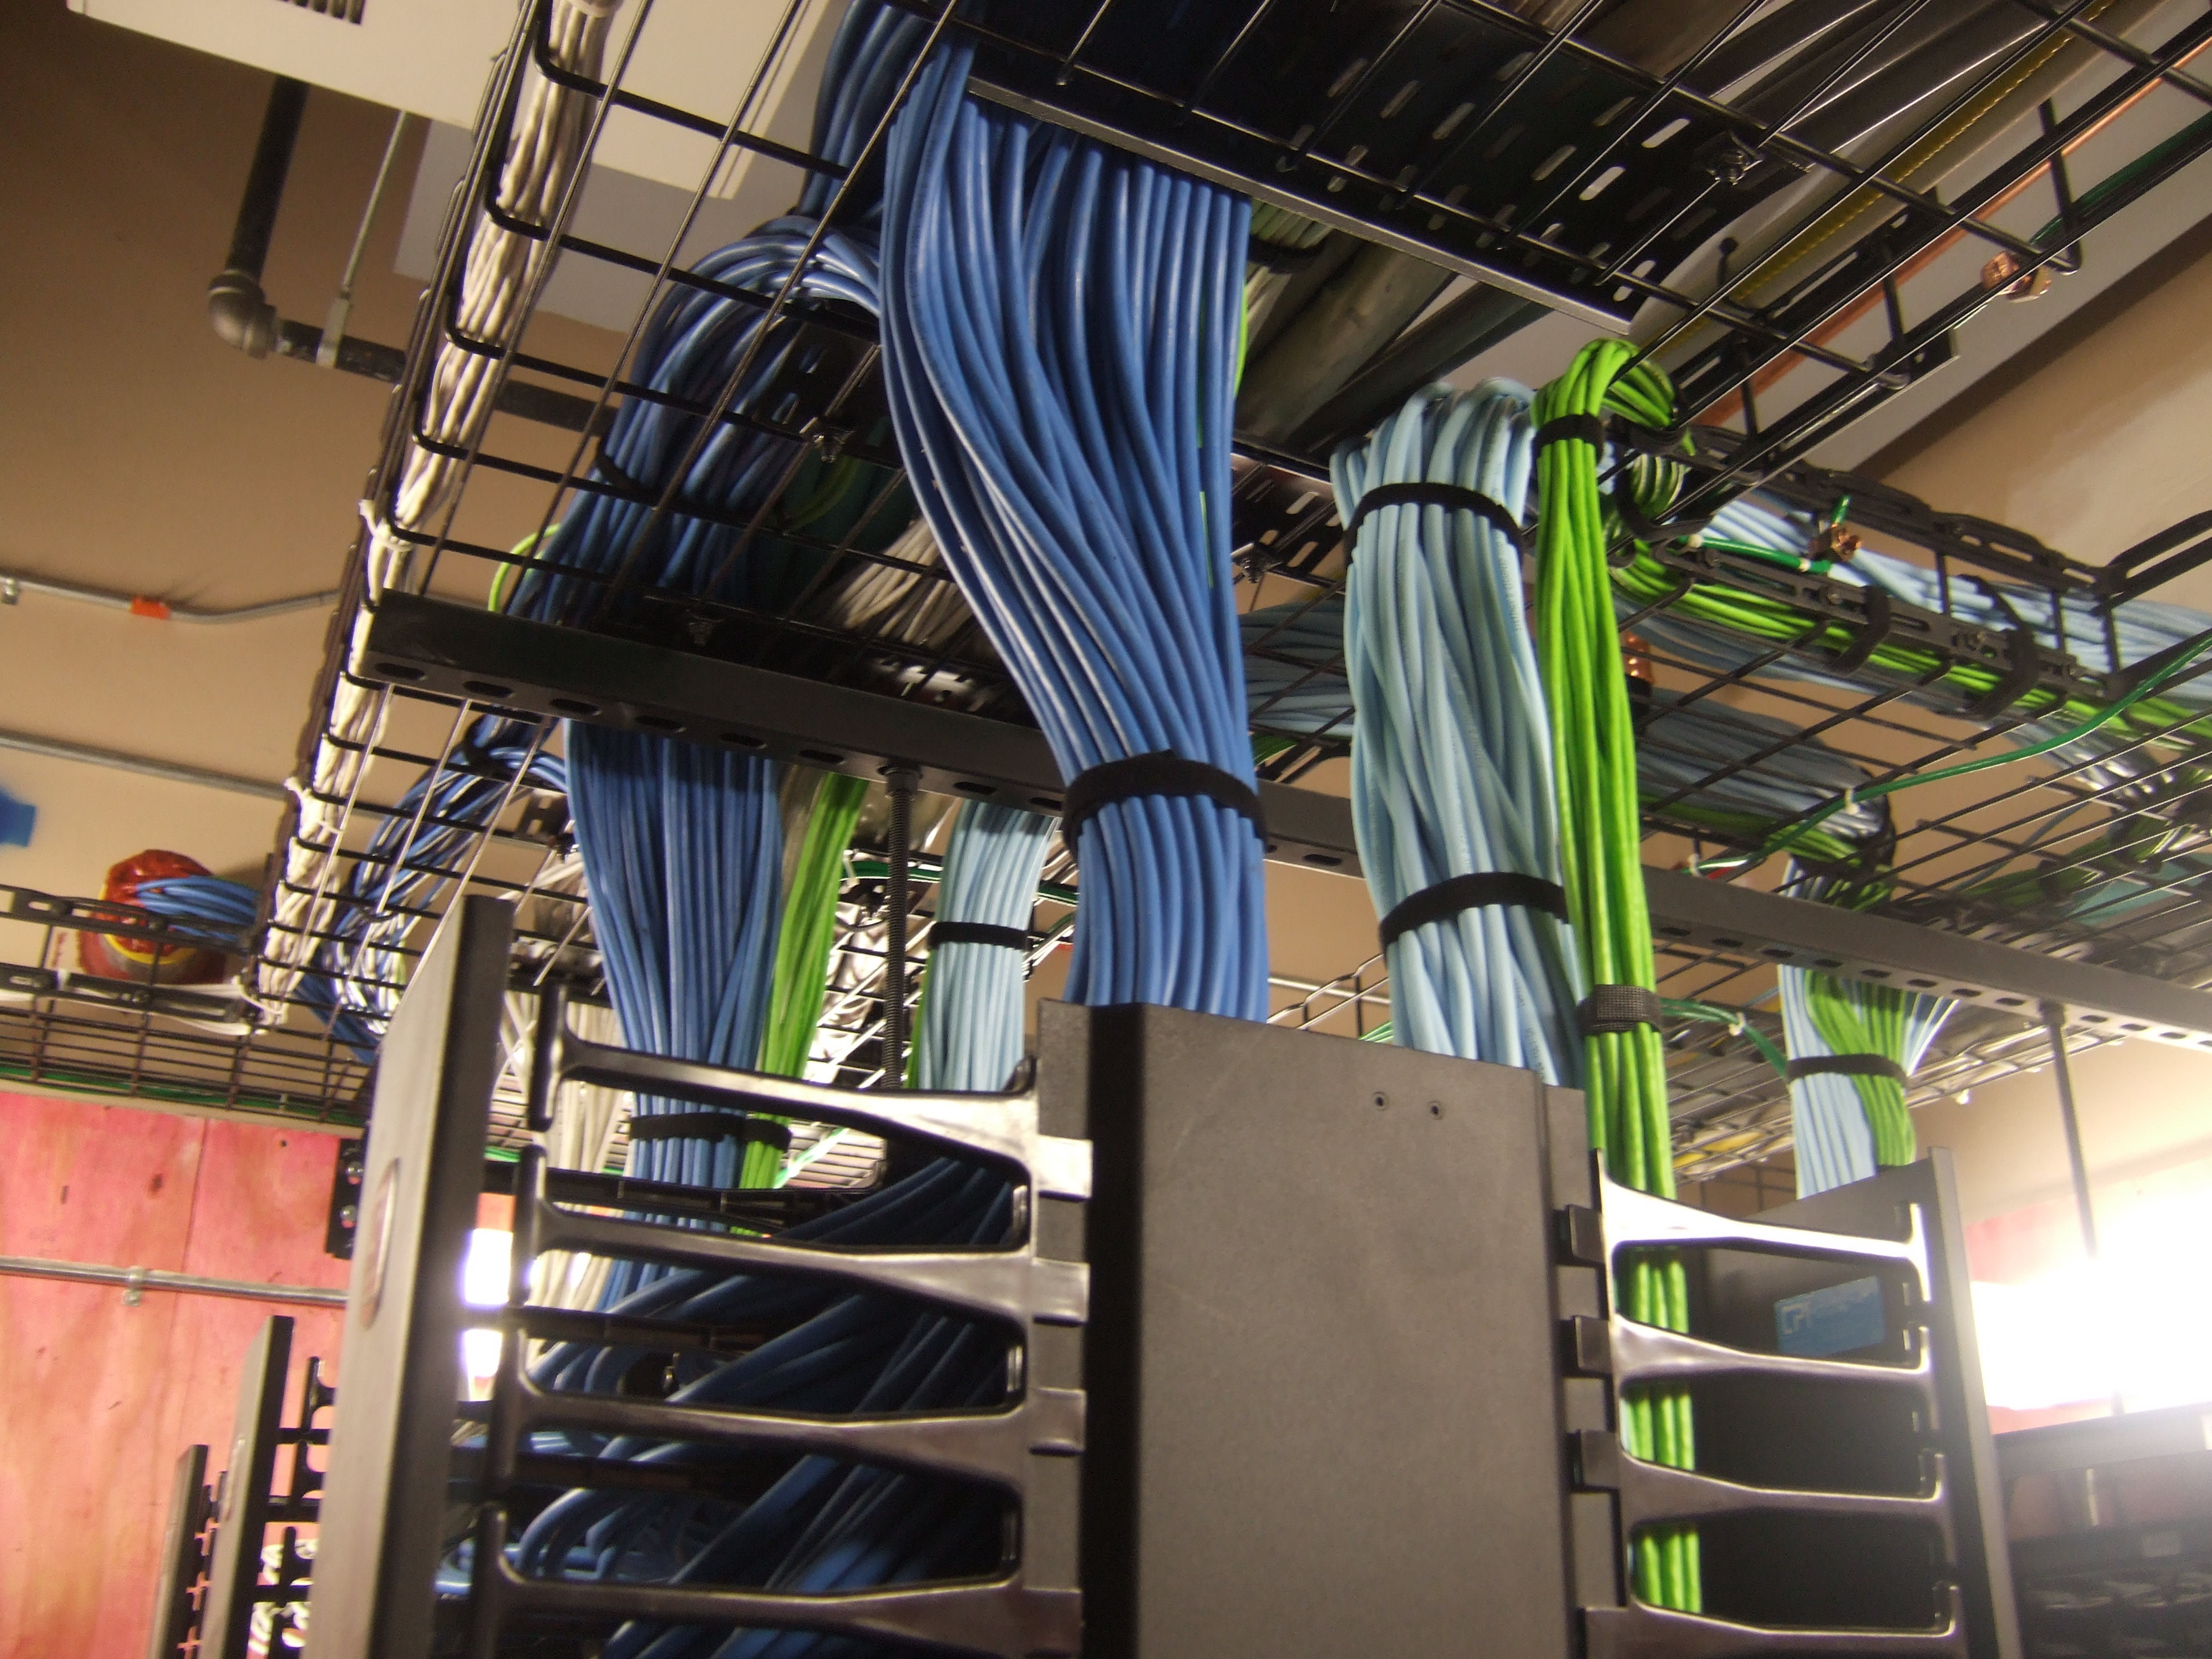 network_cabling_3_lg